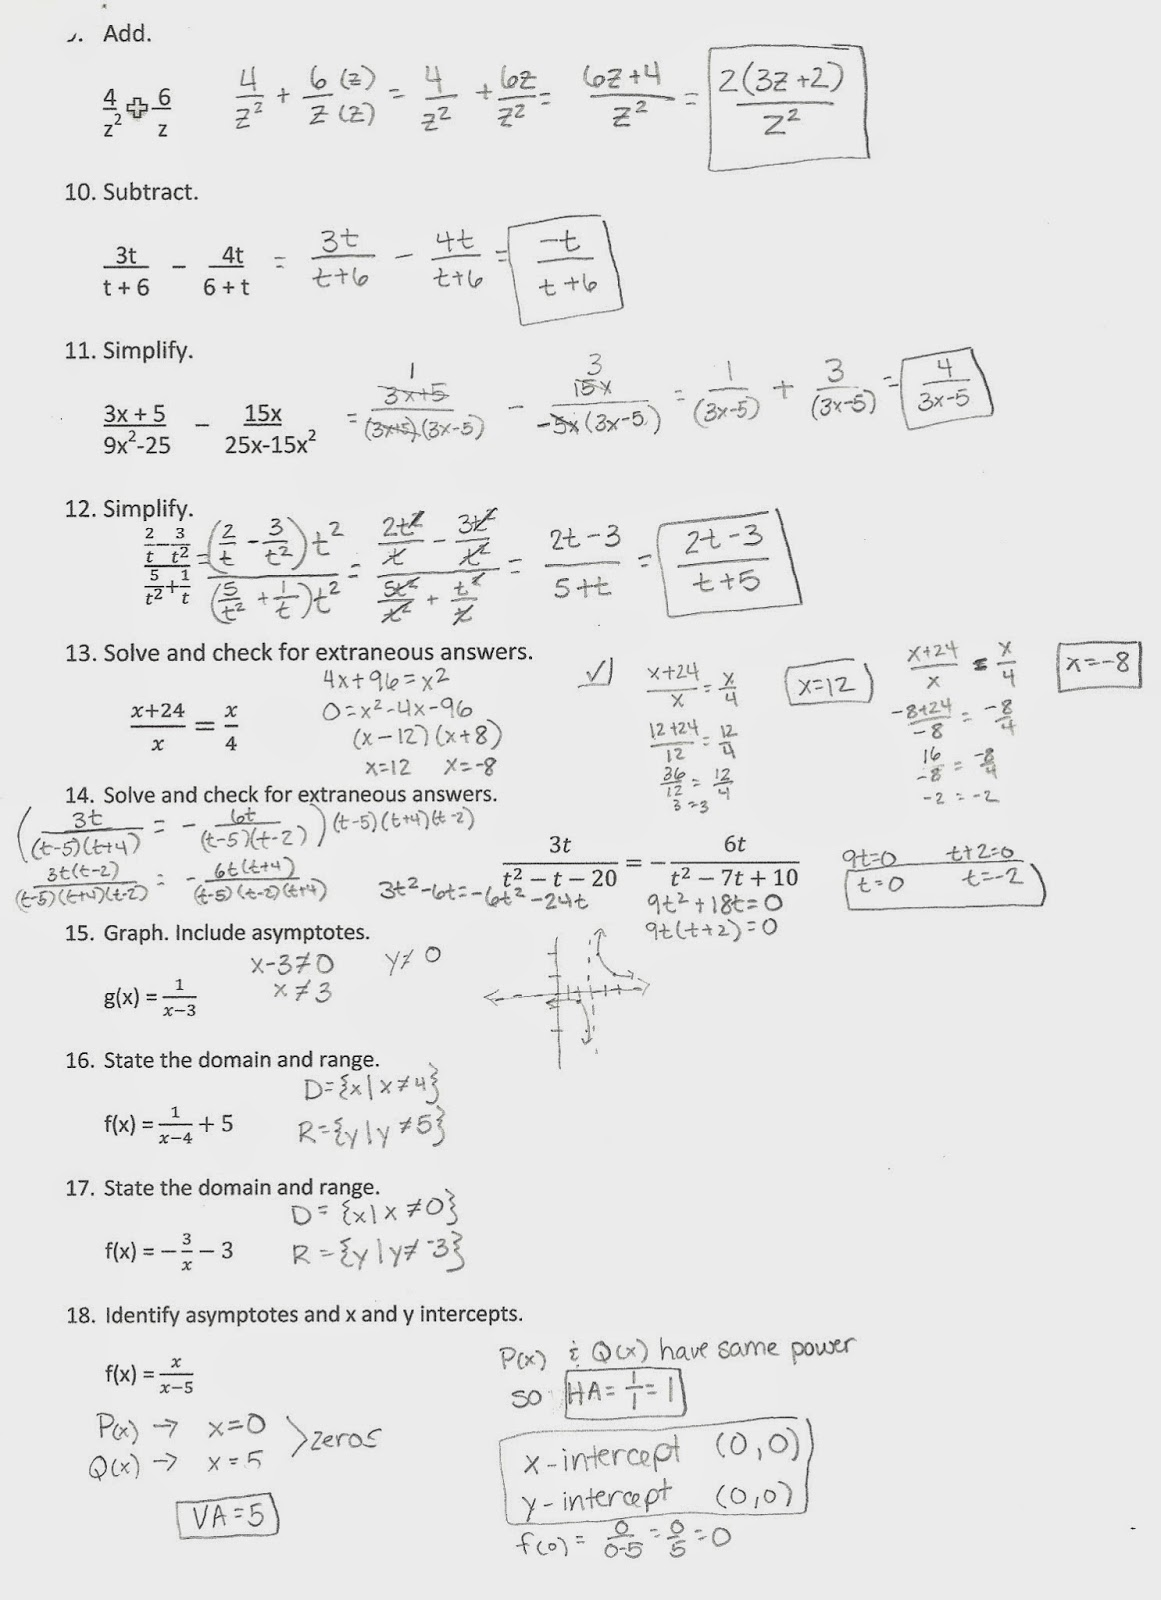 worksheet Algebra 2 Worksheet Answers homework algebra 2 answers factoring polynomials worksheet with diamond geo engineering services glencoe mcgraw hill worksheet